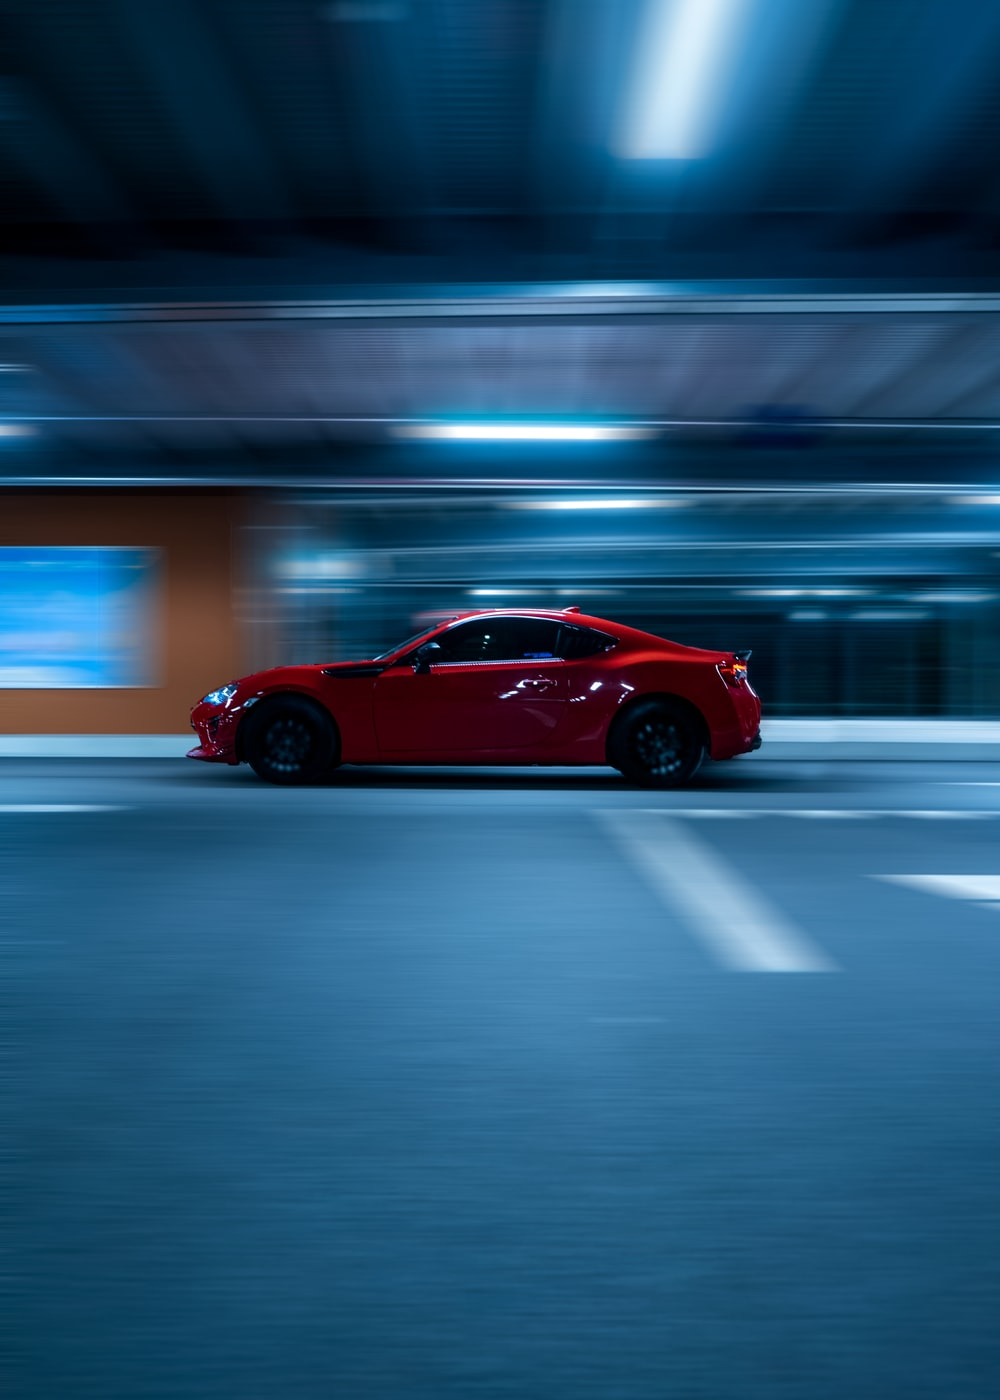 red coupe on road during night time